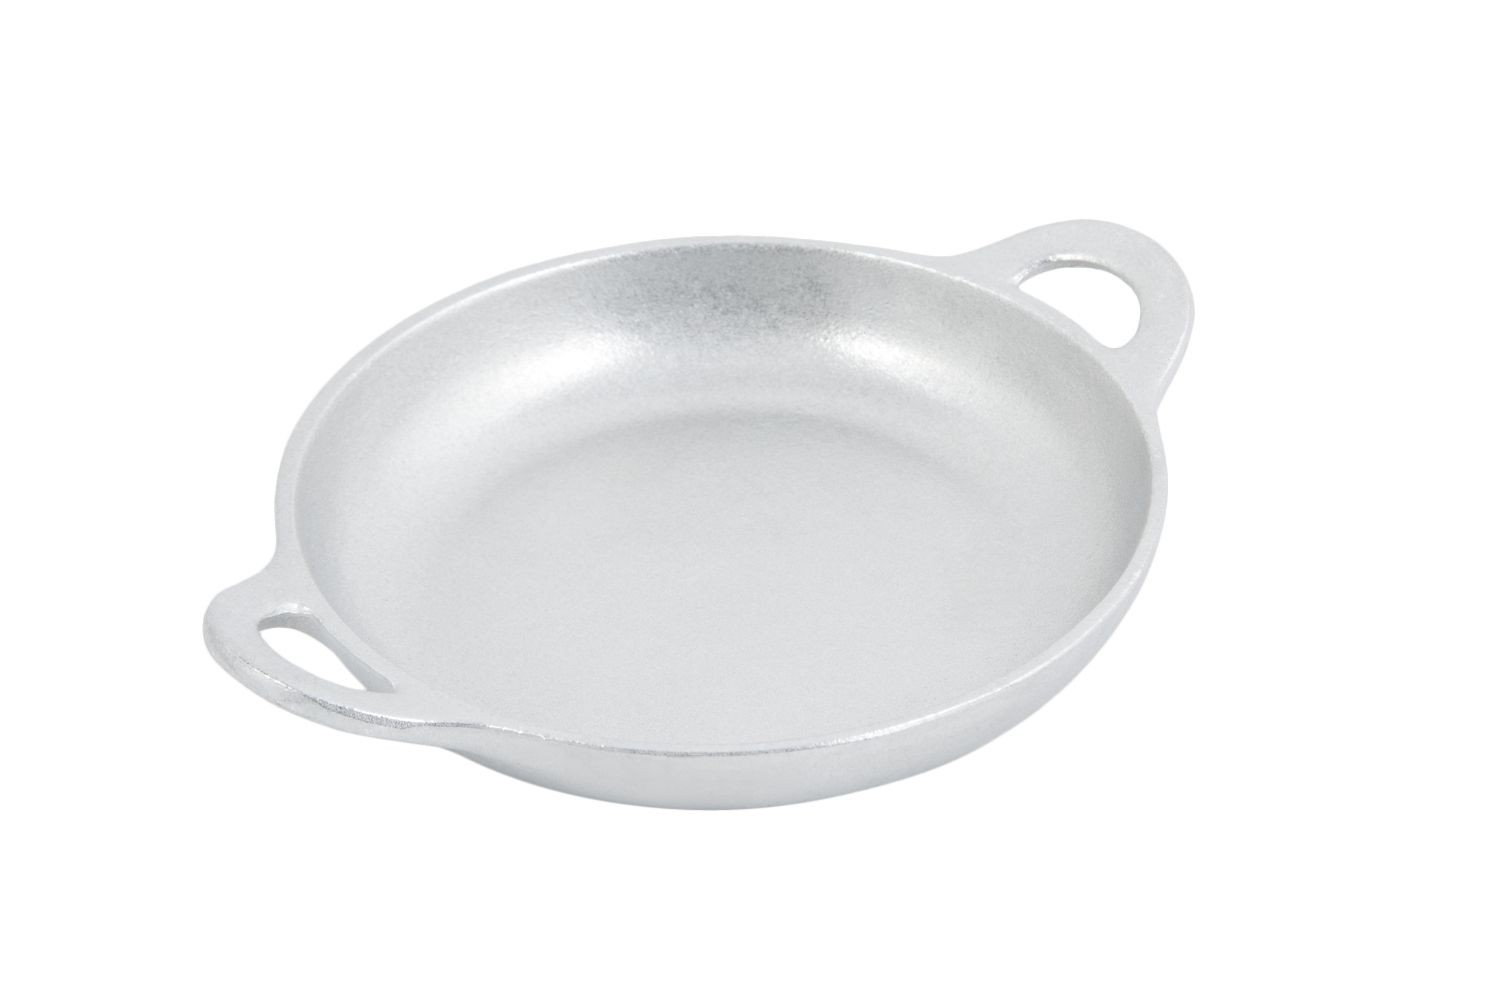 "Bon Chef 5000P Round Au Gratin Dish, Pewter Glo 5 3/4"" Dia., Set of 6"